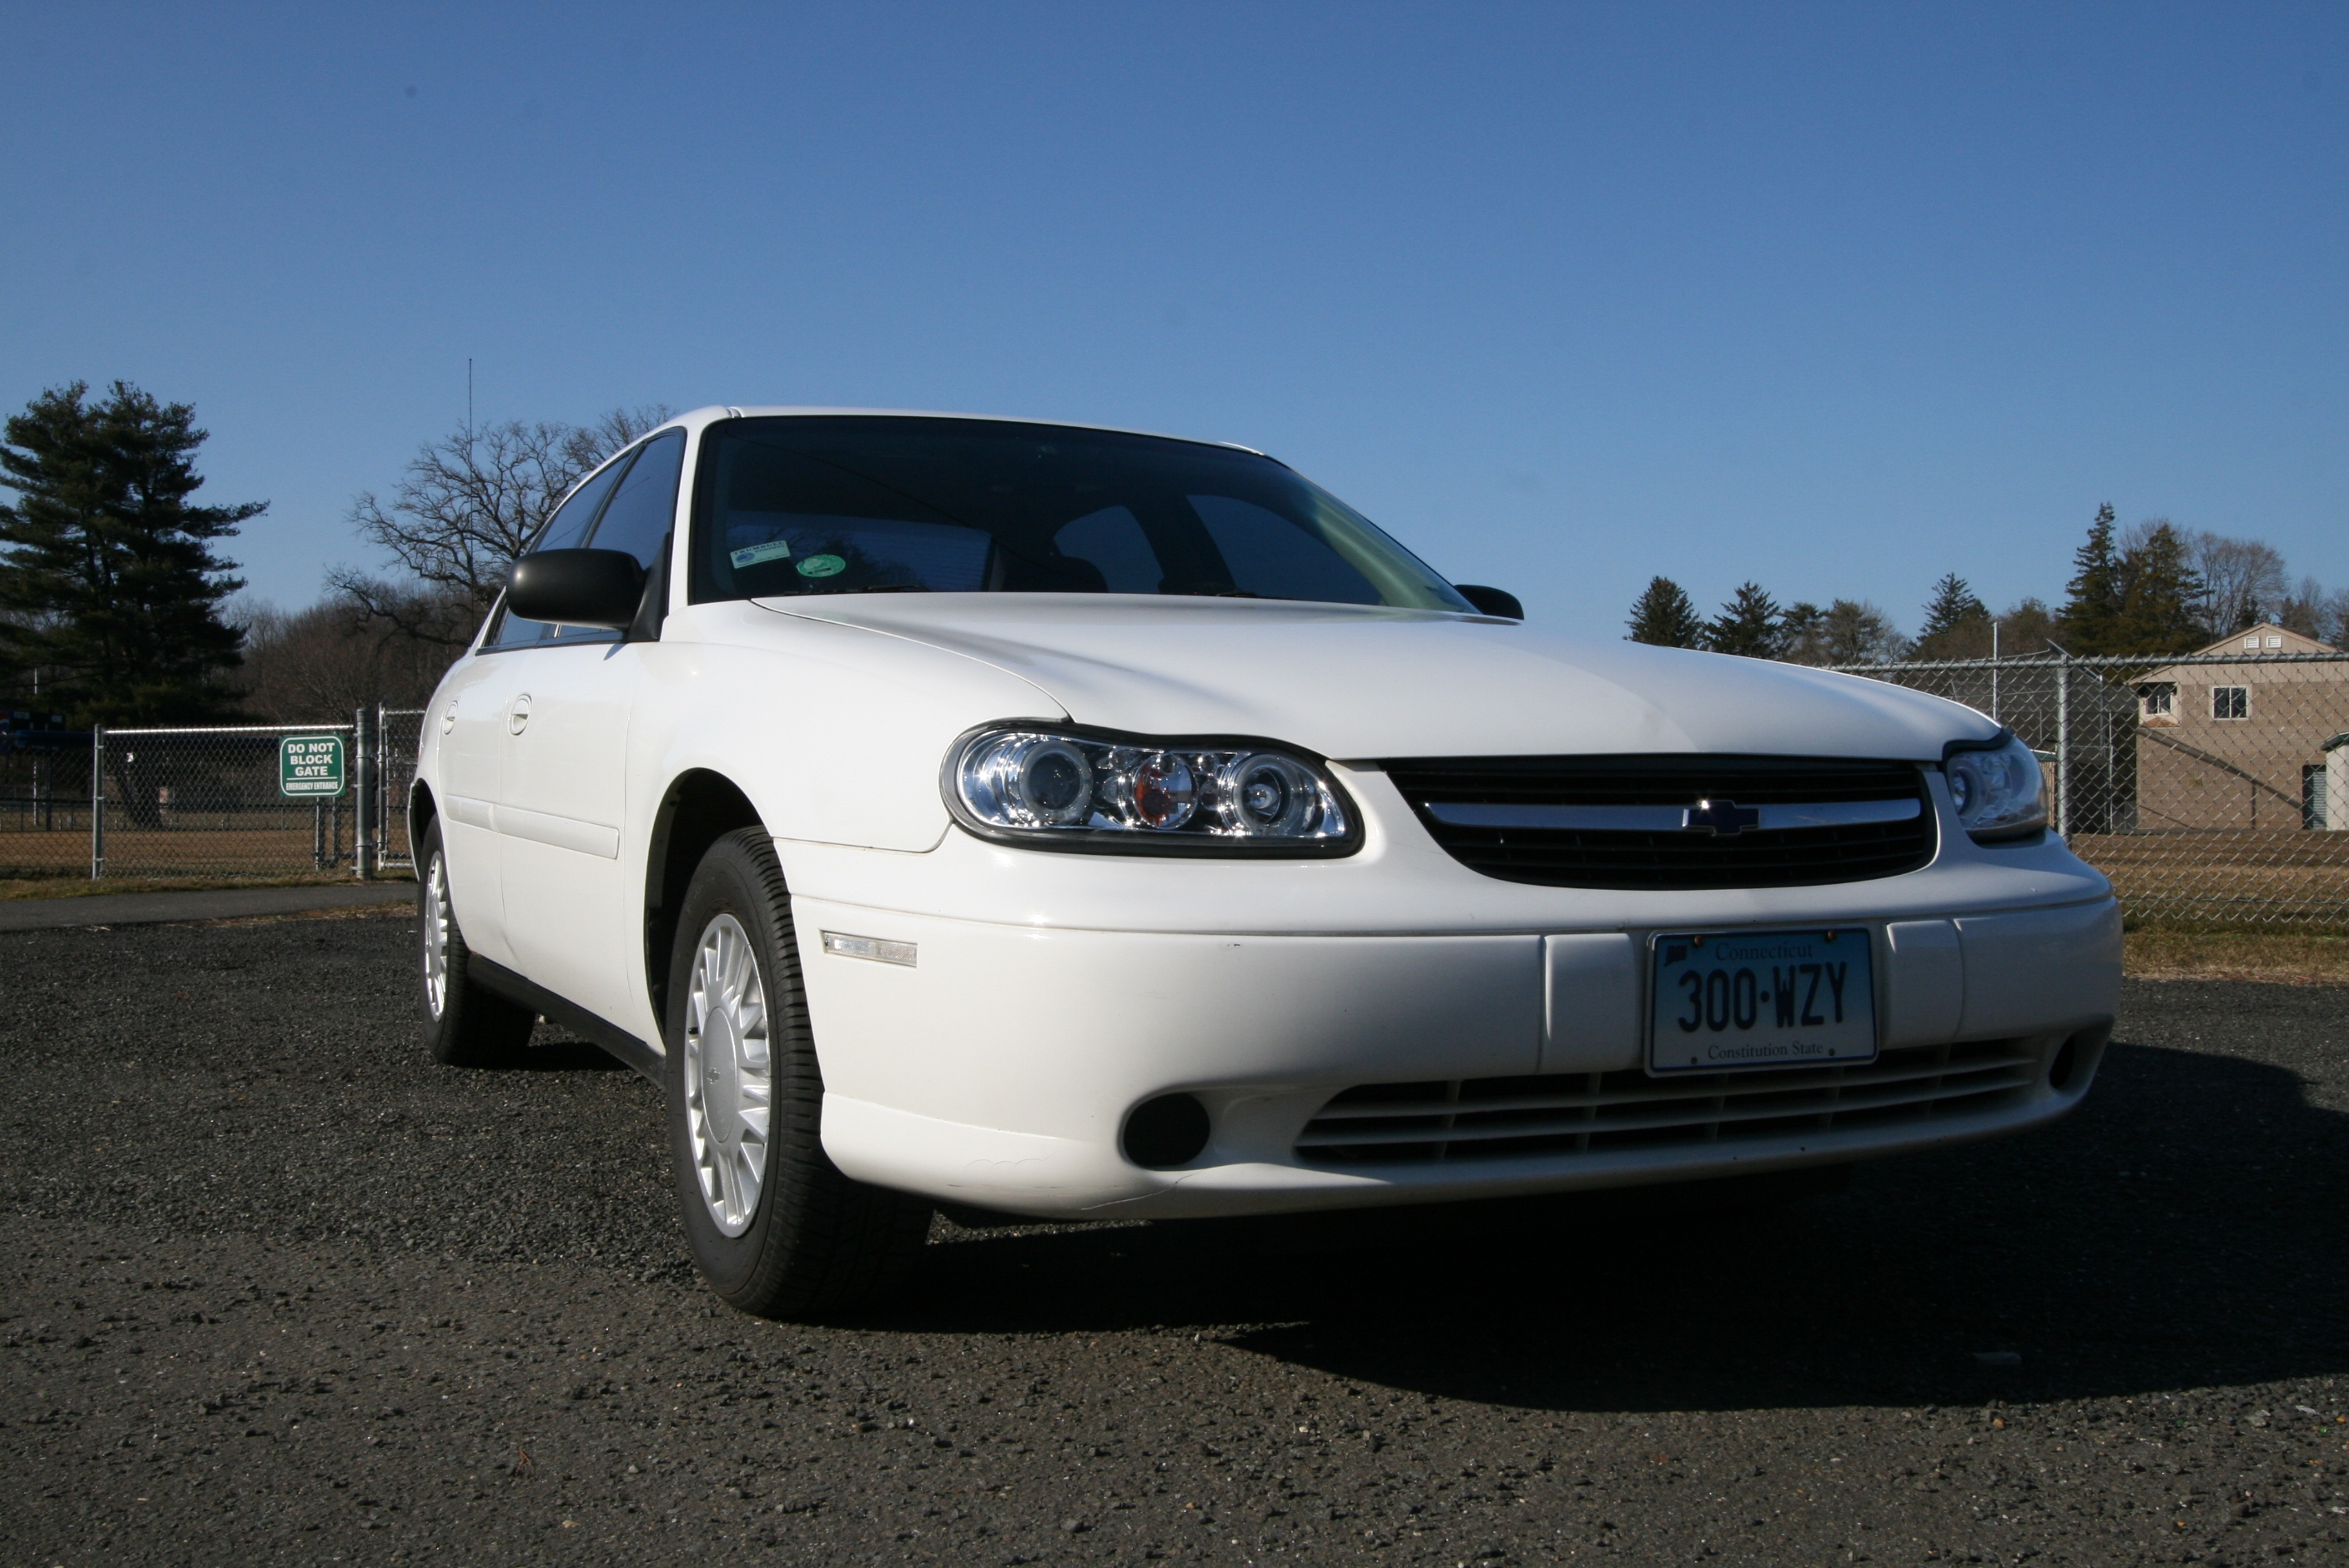 ram angel 39 s 2001 chevrolet malibu in trumbull ct. Black Bedroom Furniture Sets. Home Design Ideas